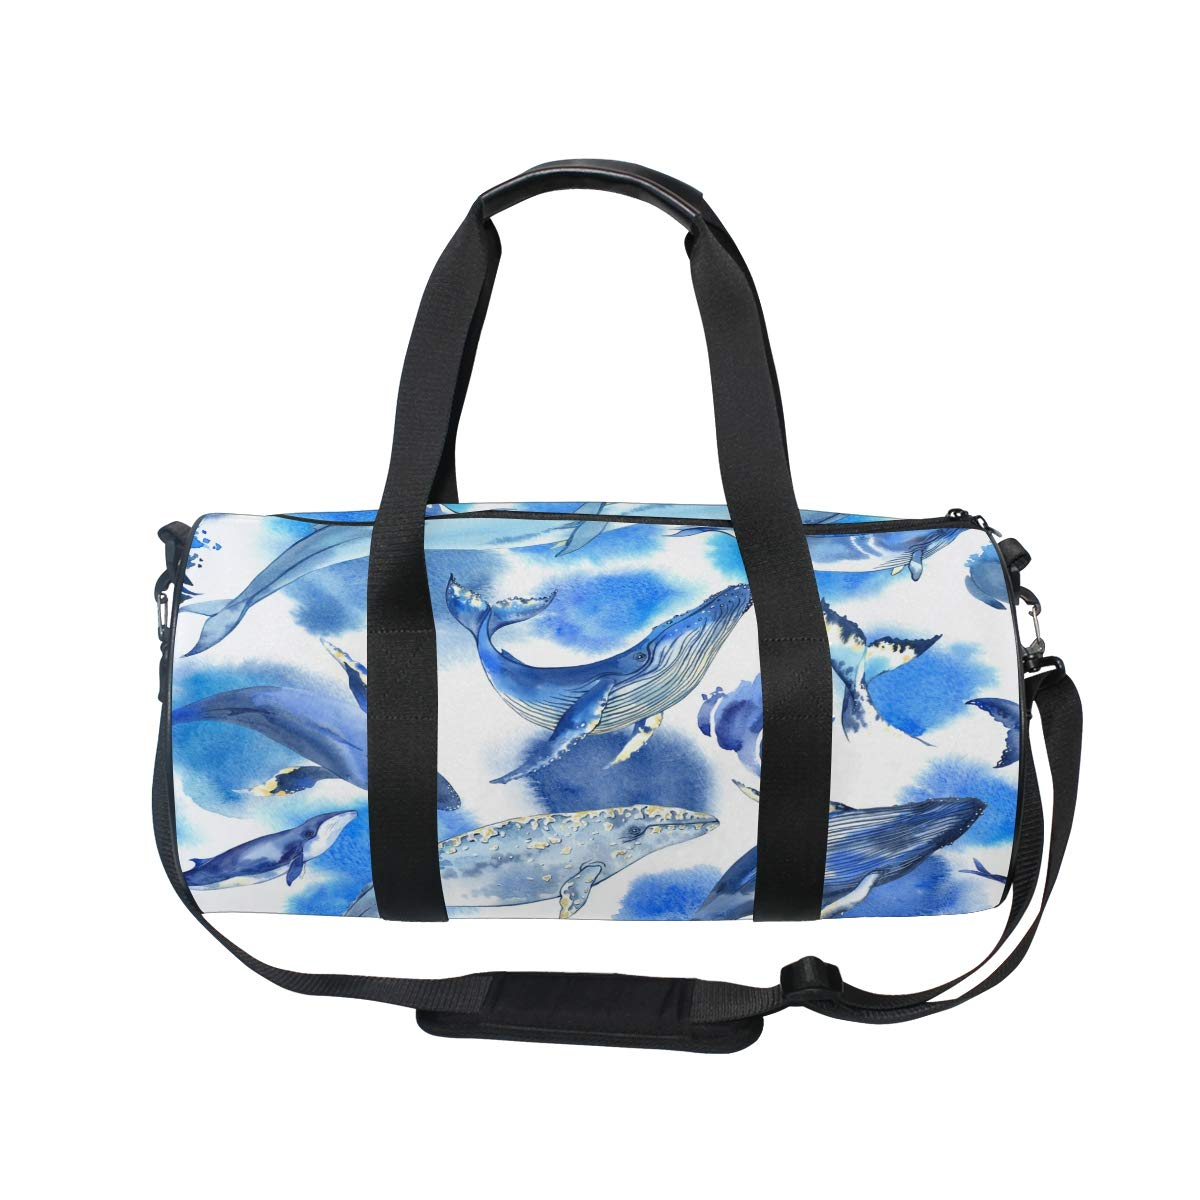 Sea Whale Yoga Sports Gym Duffle Bags Tote Sling Travel Bag Patterned Canvas with Pocket and Zipper For Men Women Bag by EVERUI (Image #2)